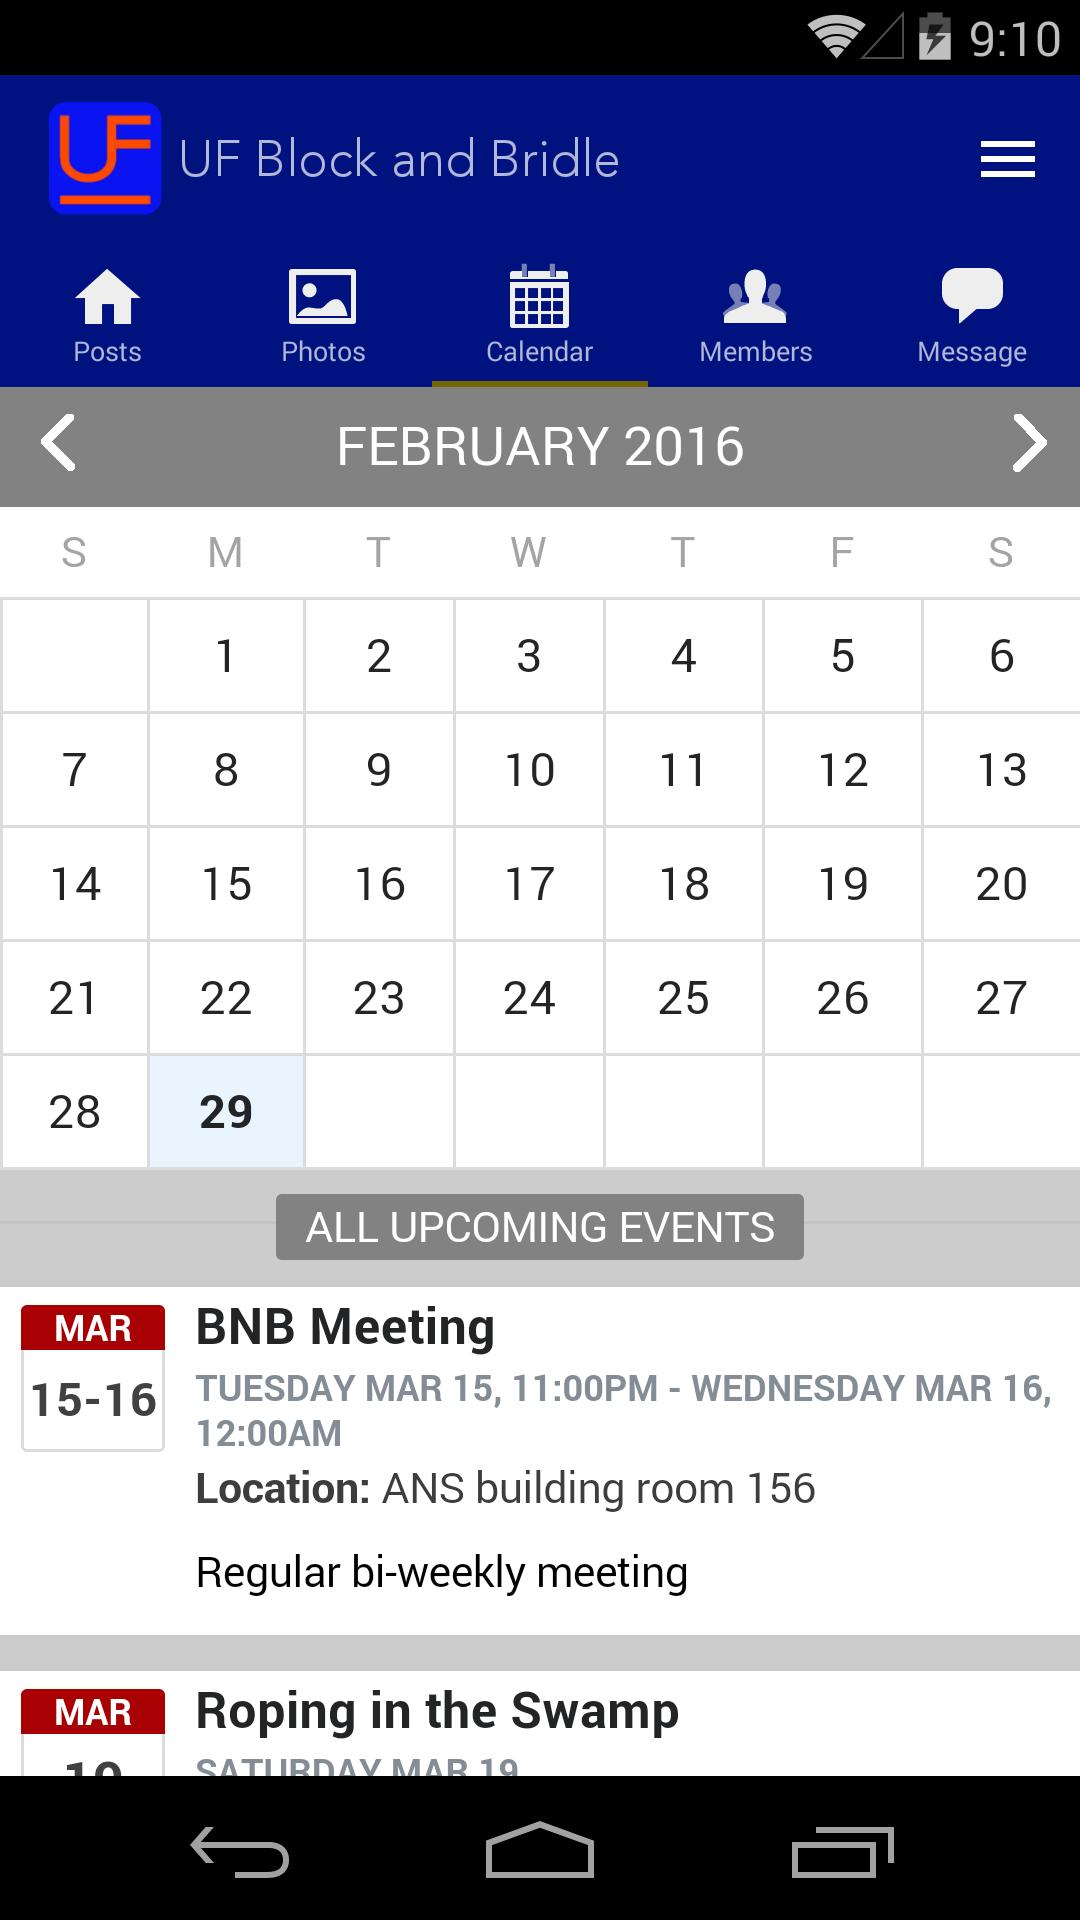 Uf Calendar Of Events.Uf Block And Bridle For Android Apk Download